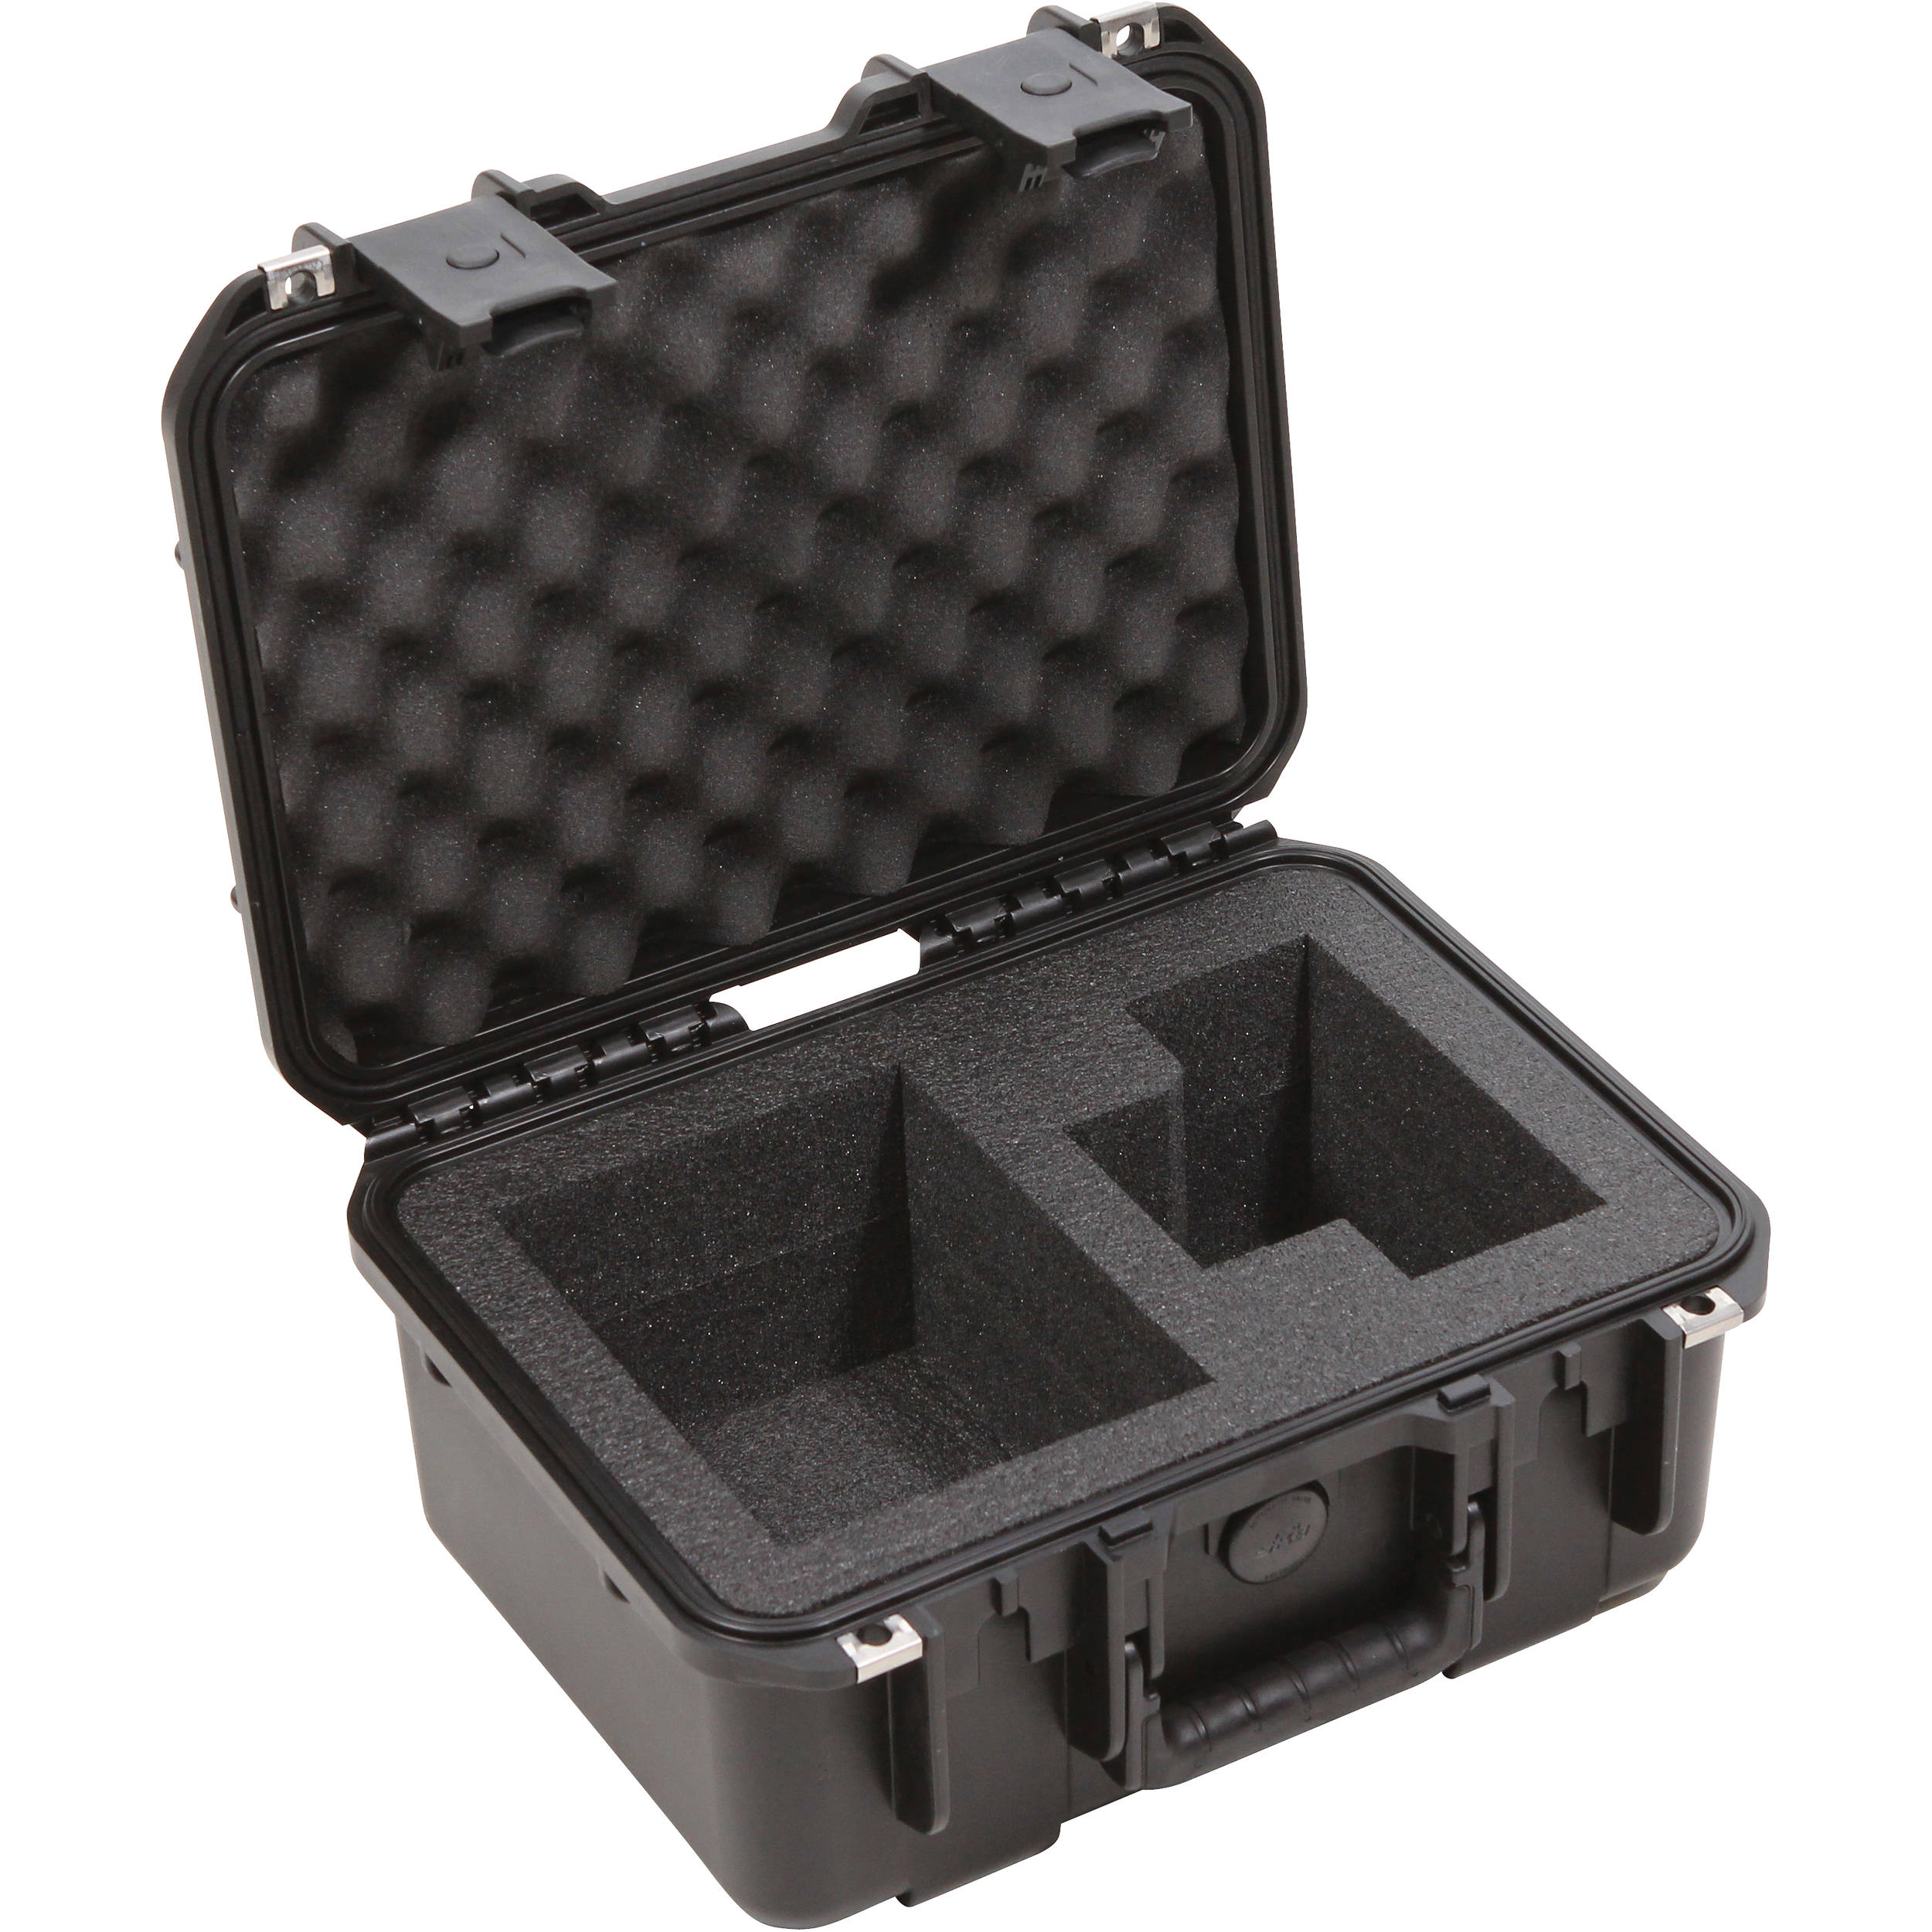 SKB iSeries 1309-6 Blackmagic Camera Case 3I-13096BKMG B&H Photo